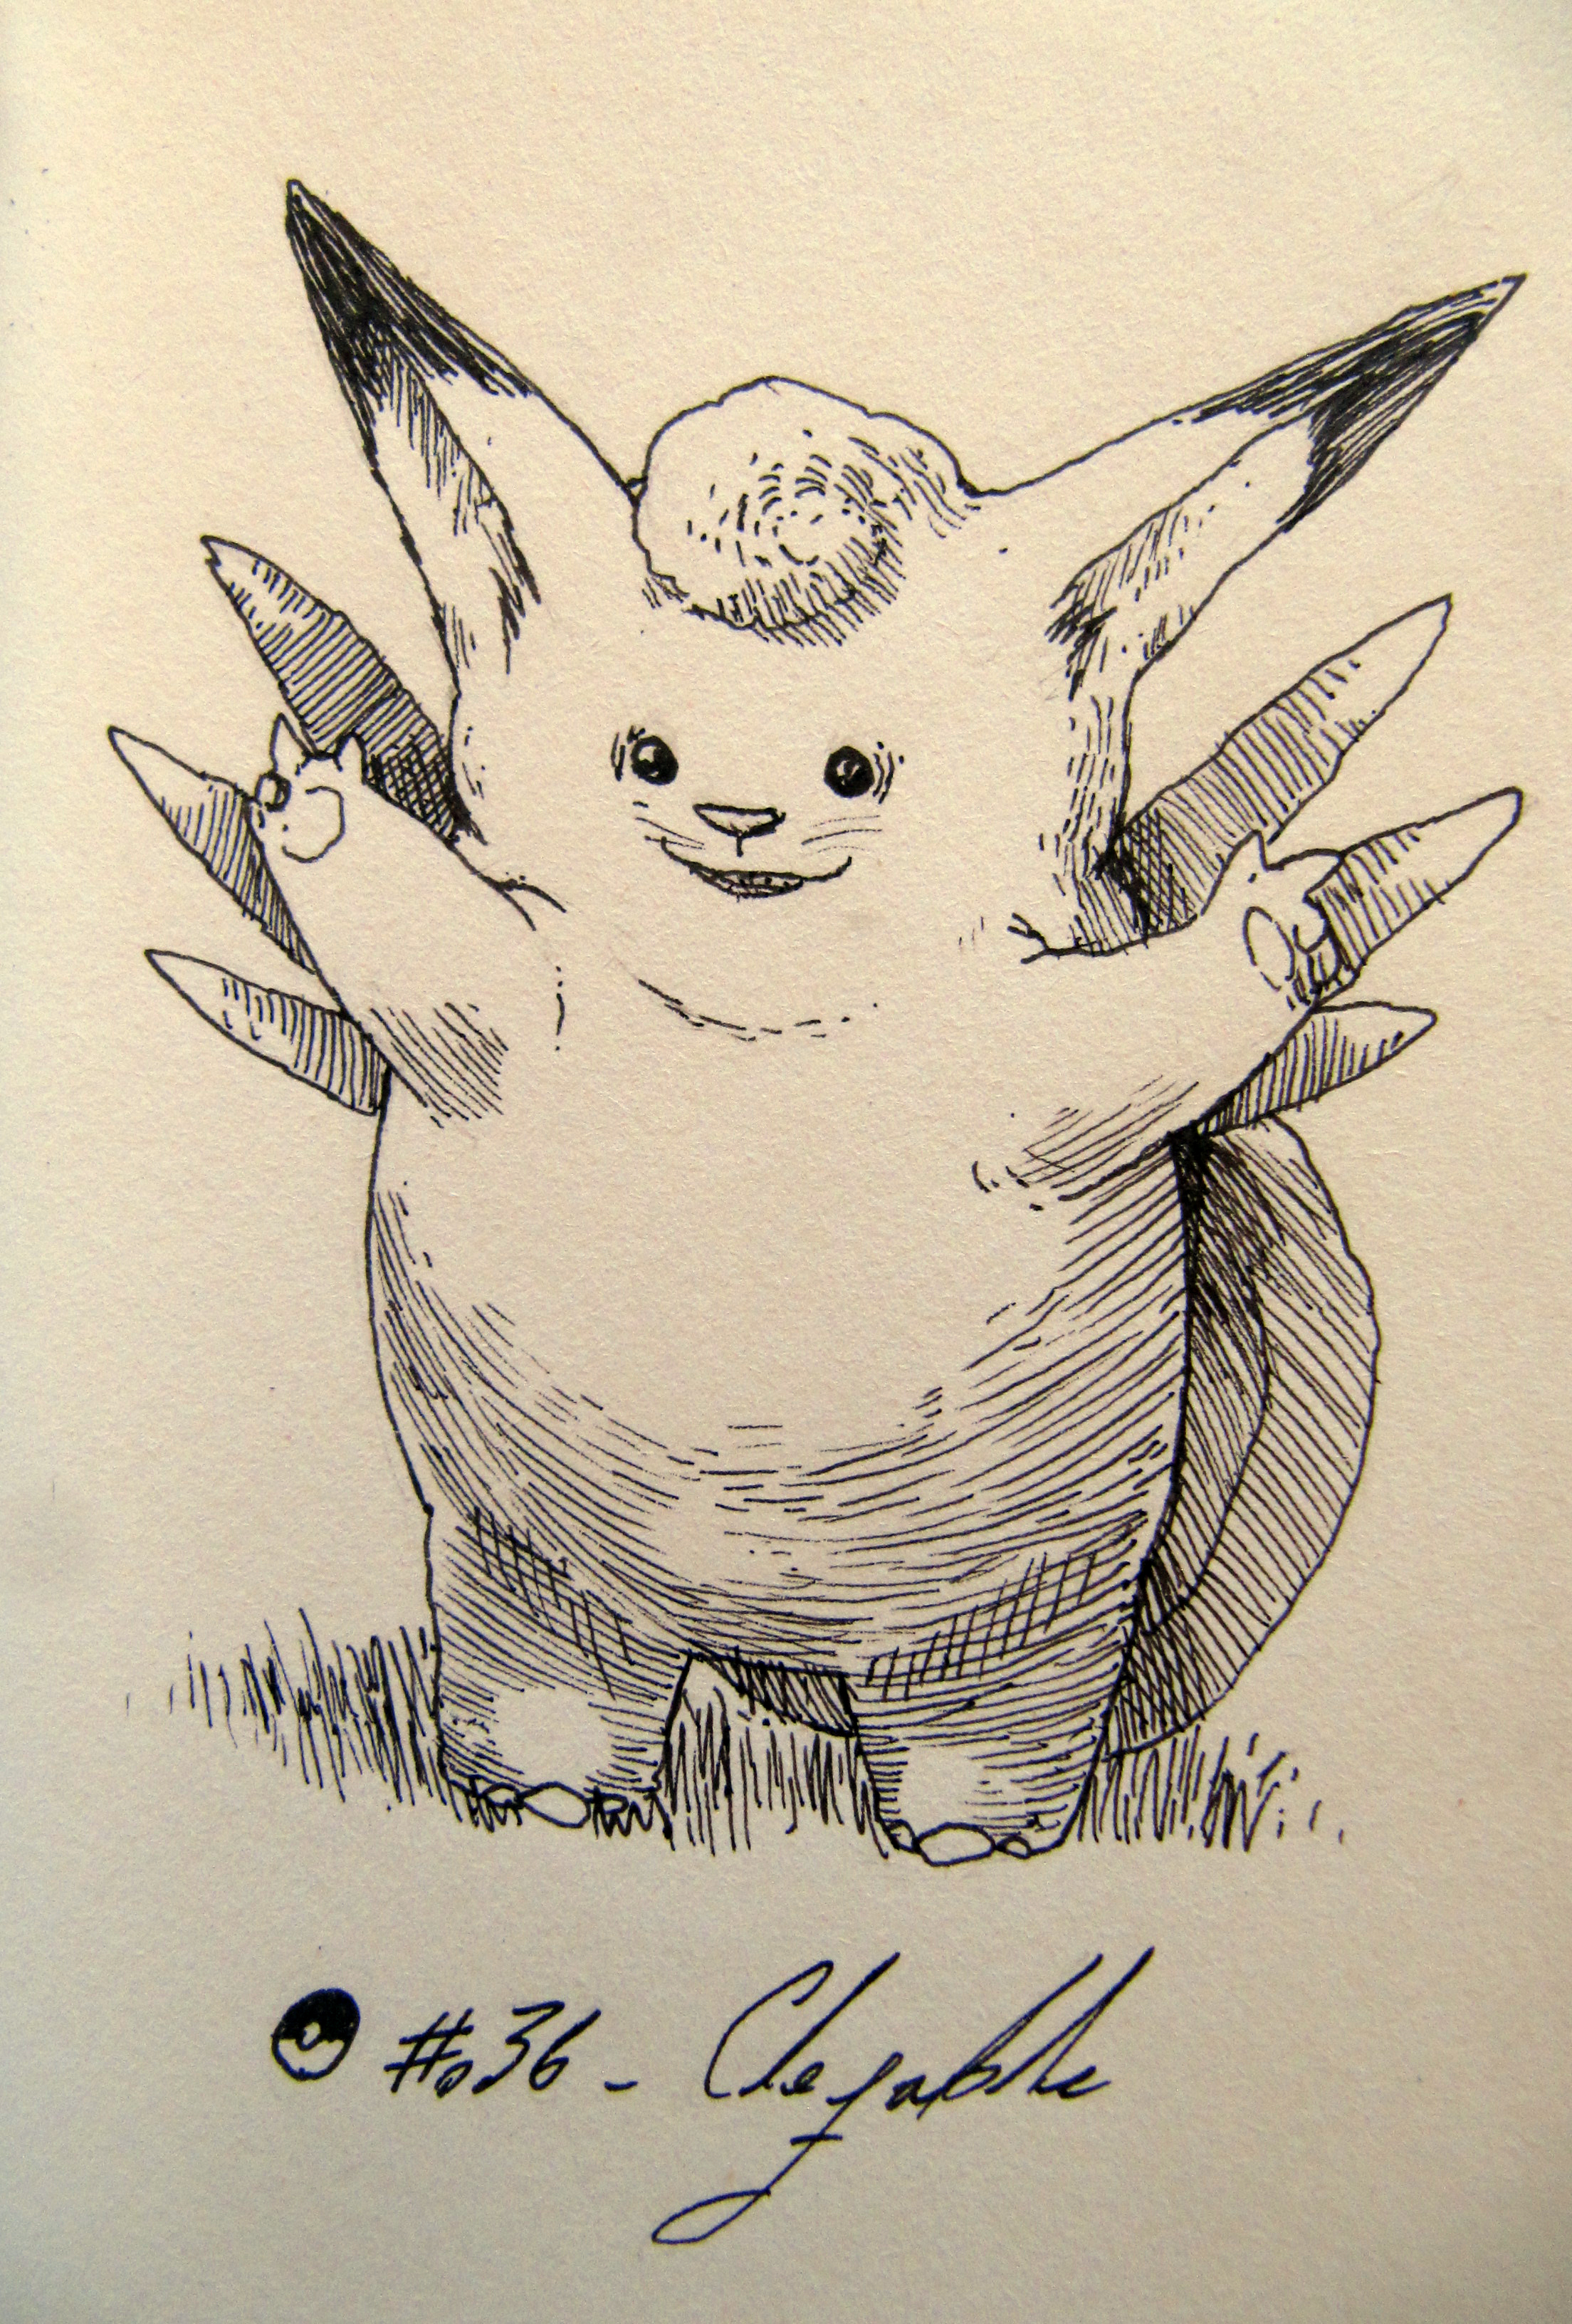 #036_Clefable